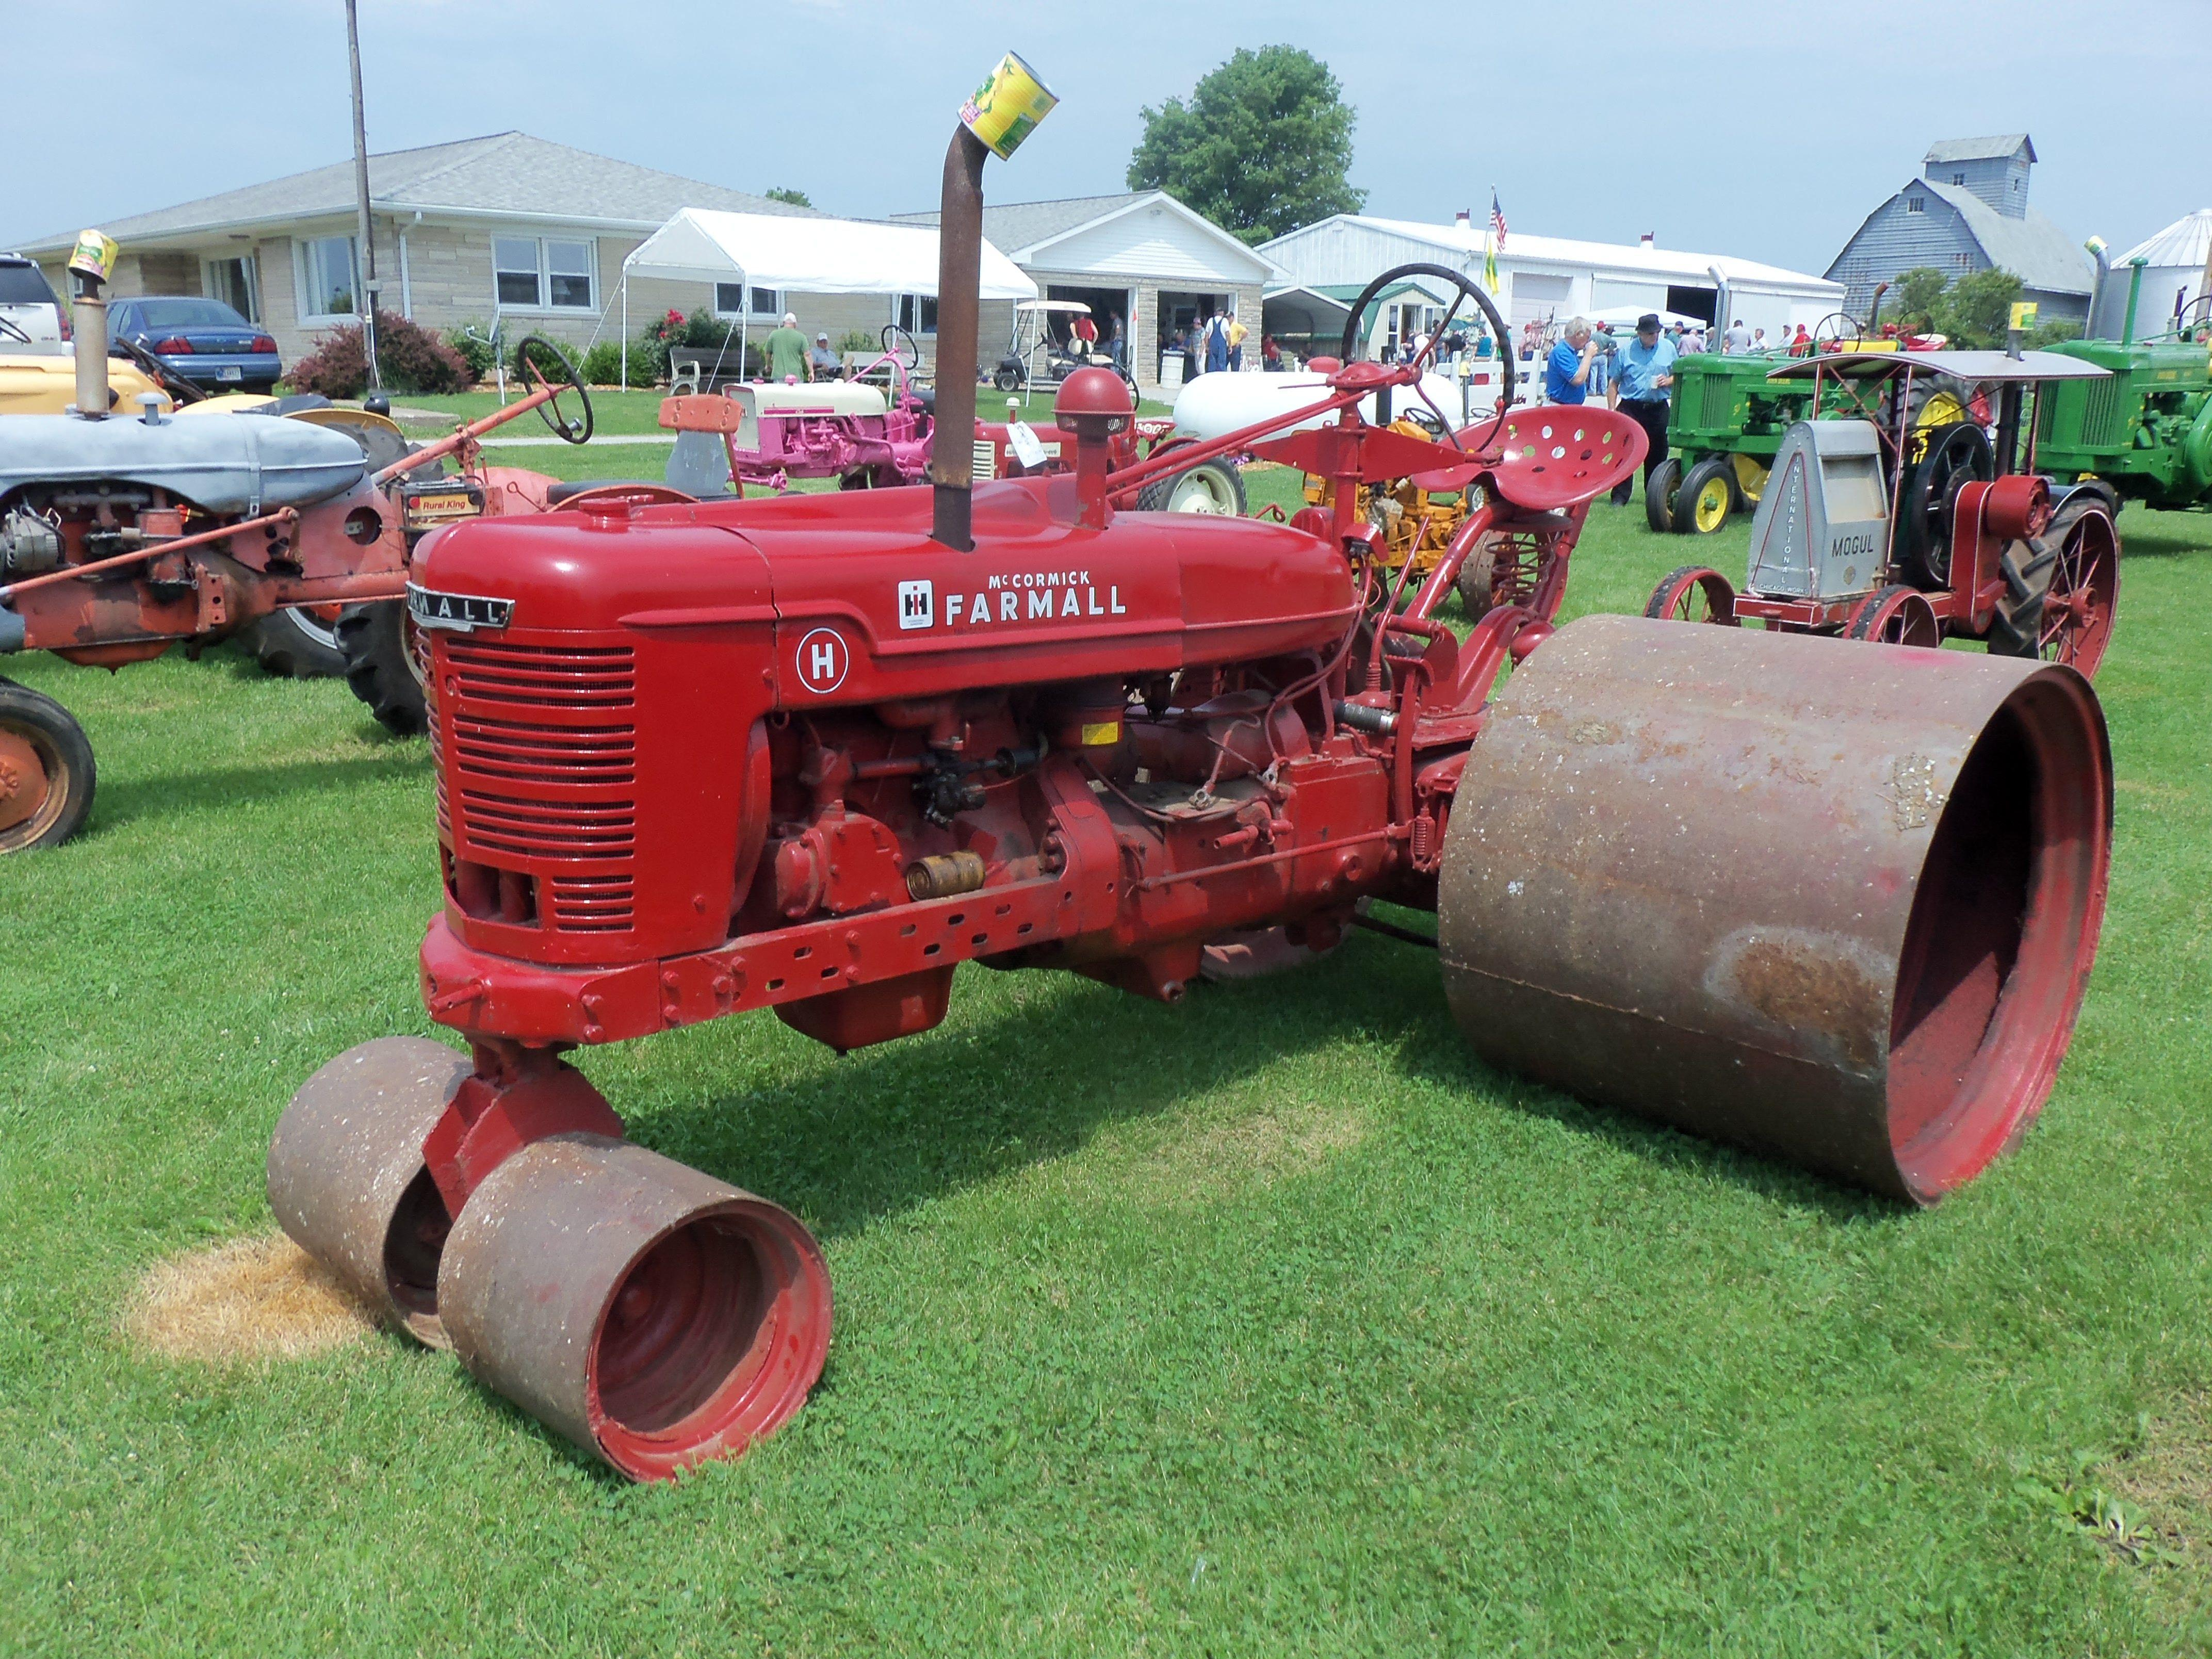 138 best images about Case ih / case international / farmall on ...